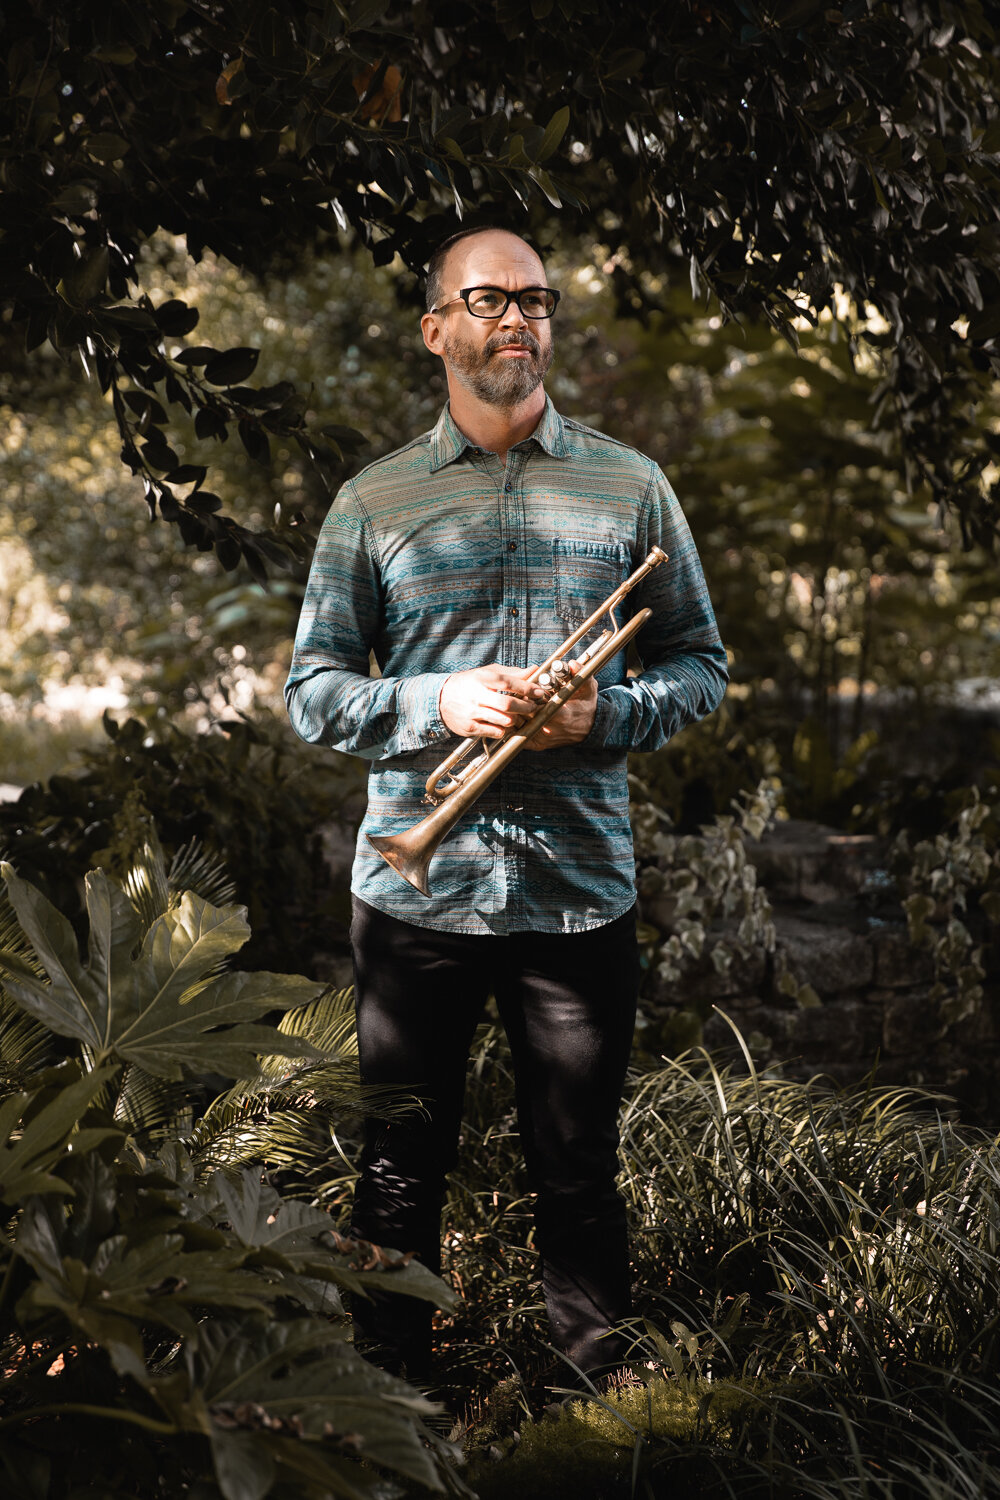 outdoor portrait of well dressed musician holding trumpet in a garden